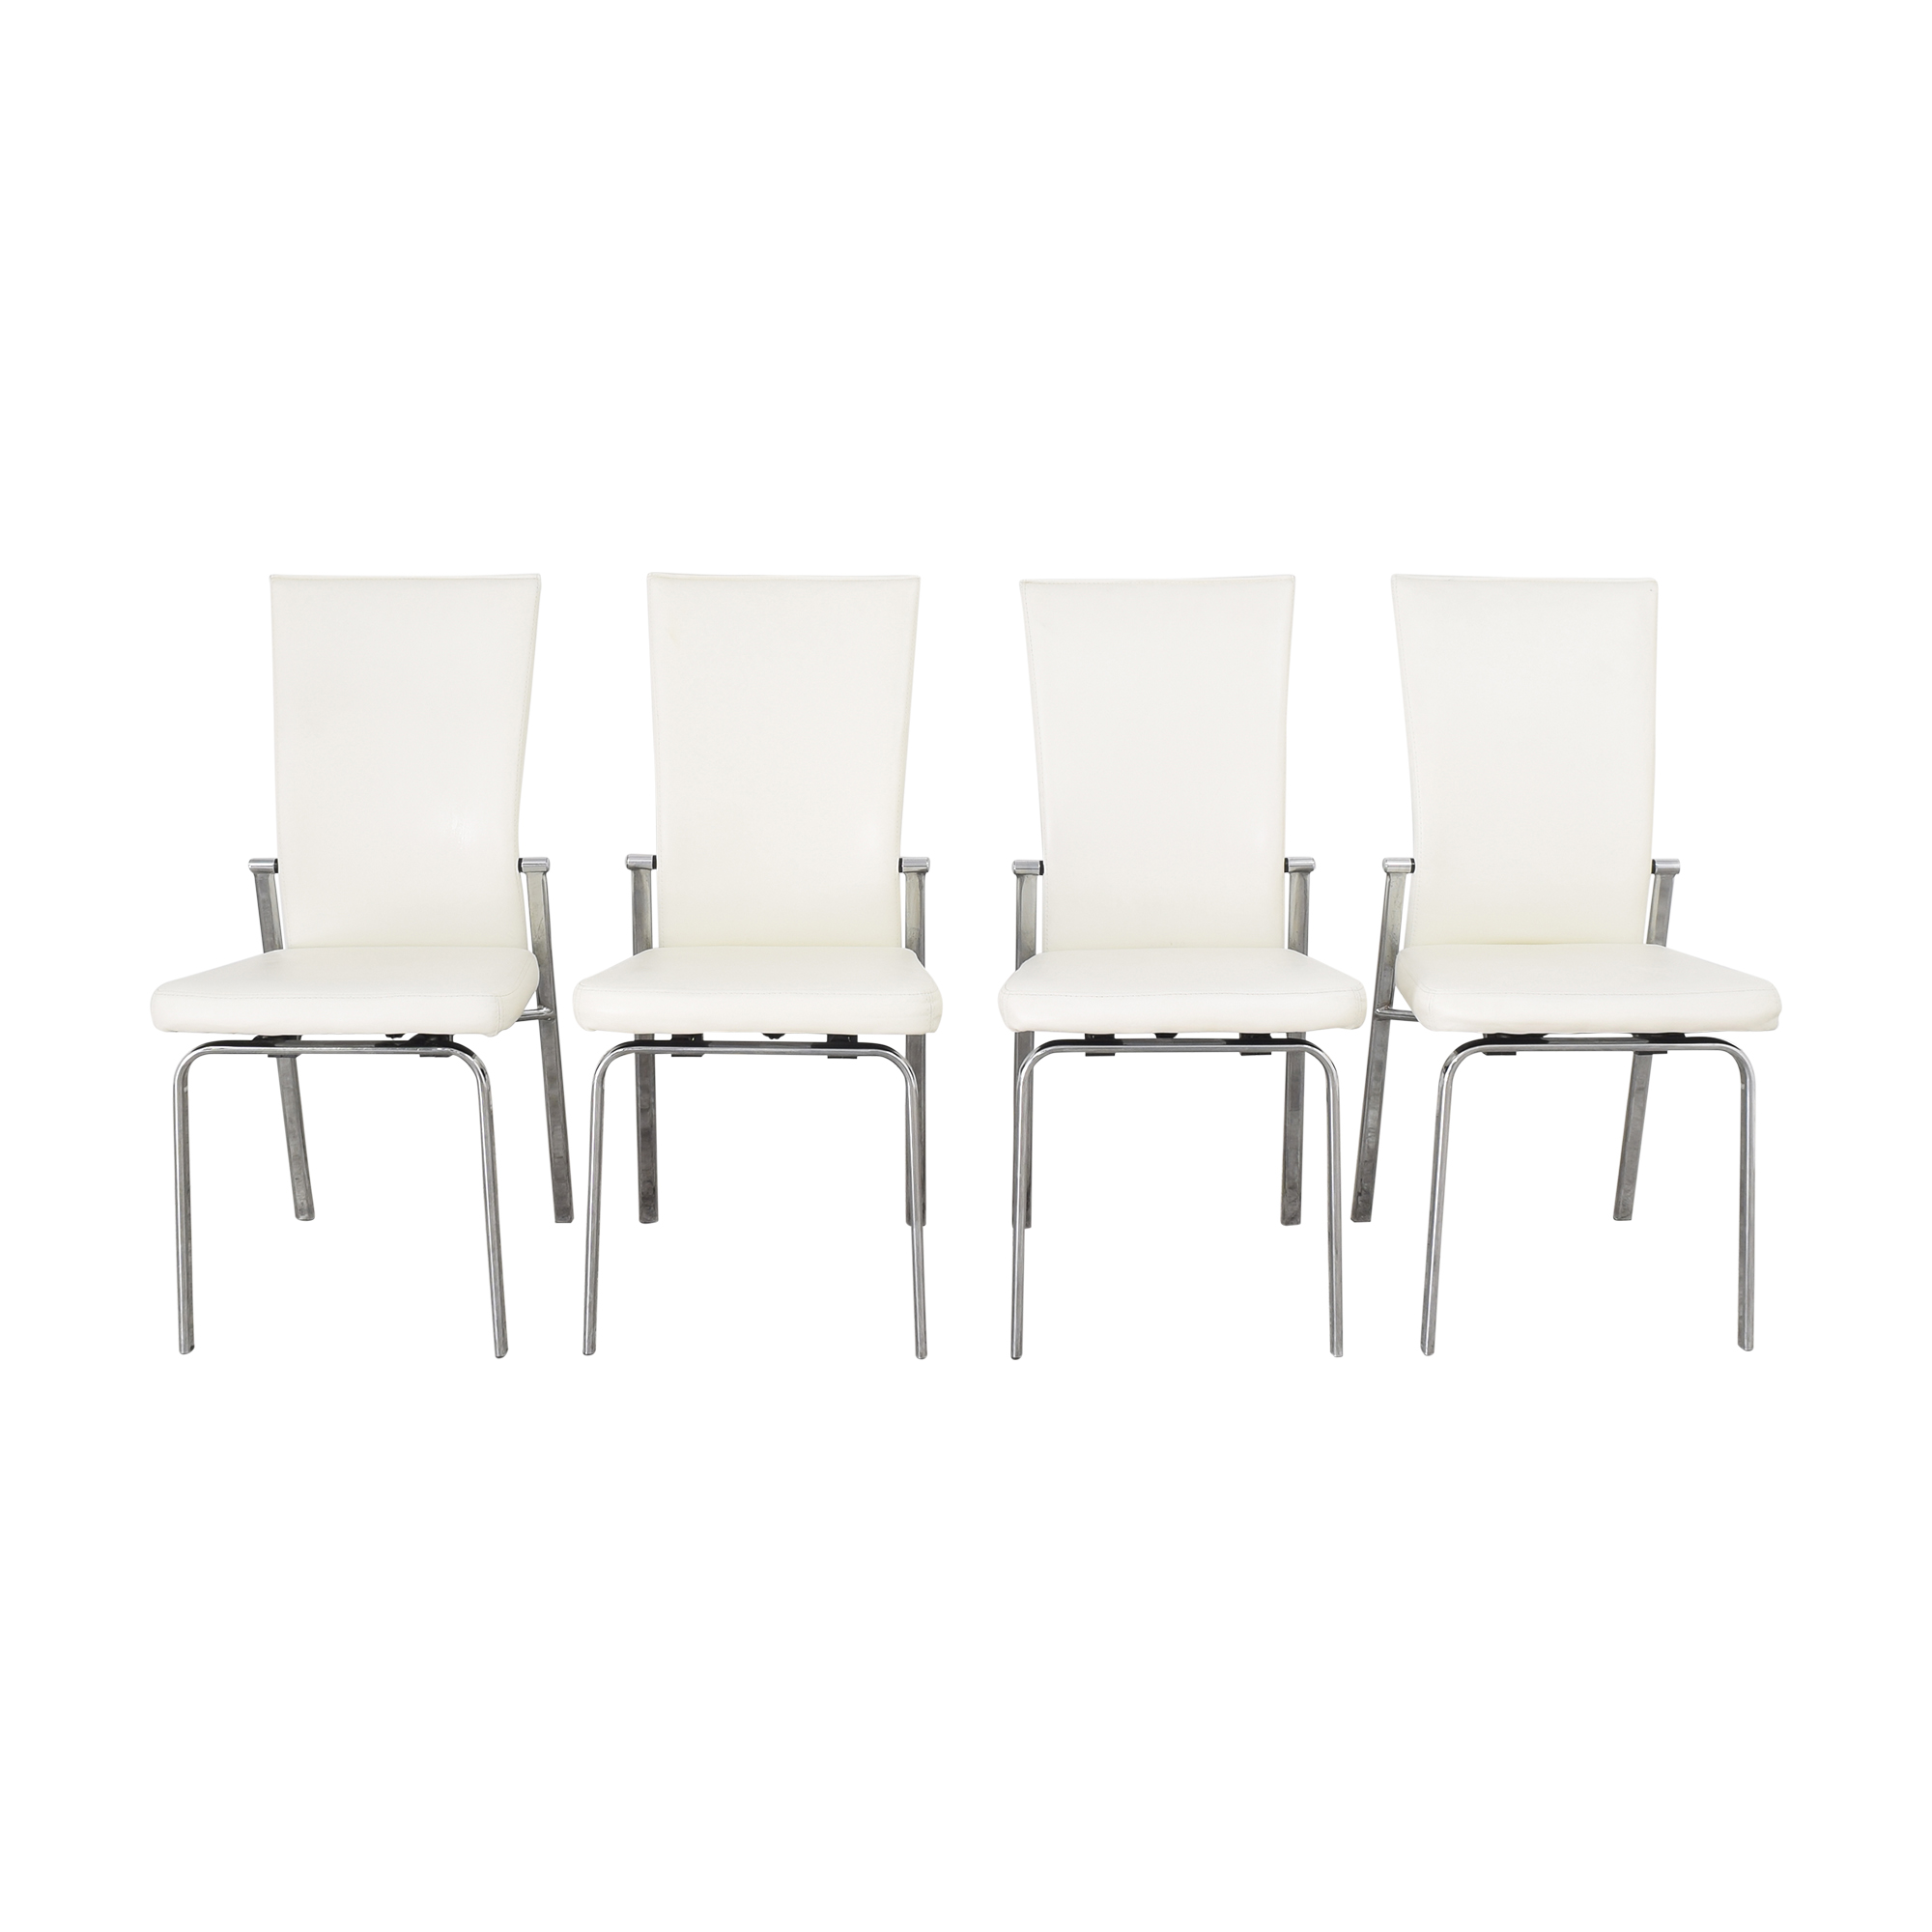 Raymour & Flanigan Paloma Dining Chairs / Dining Chairs